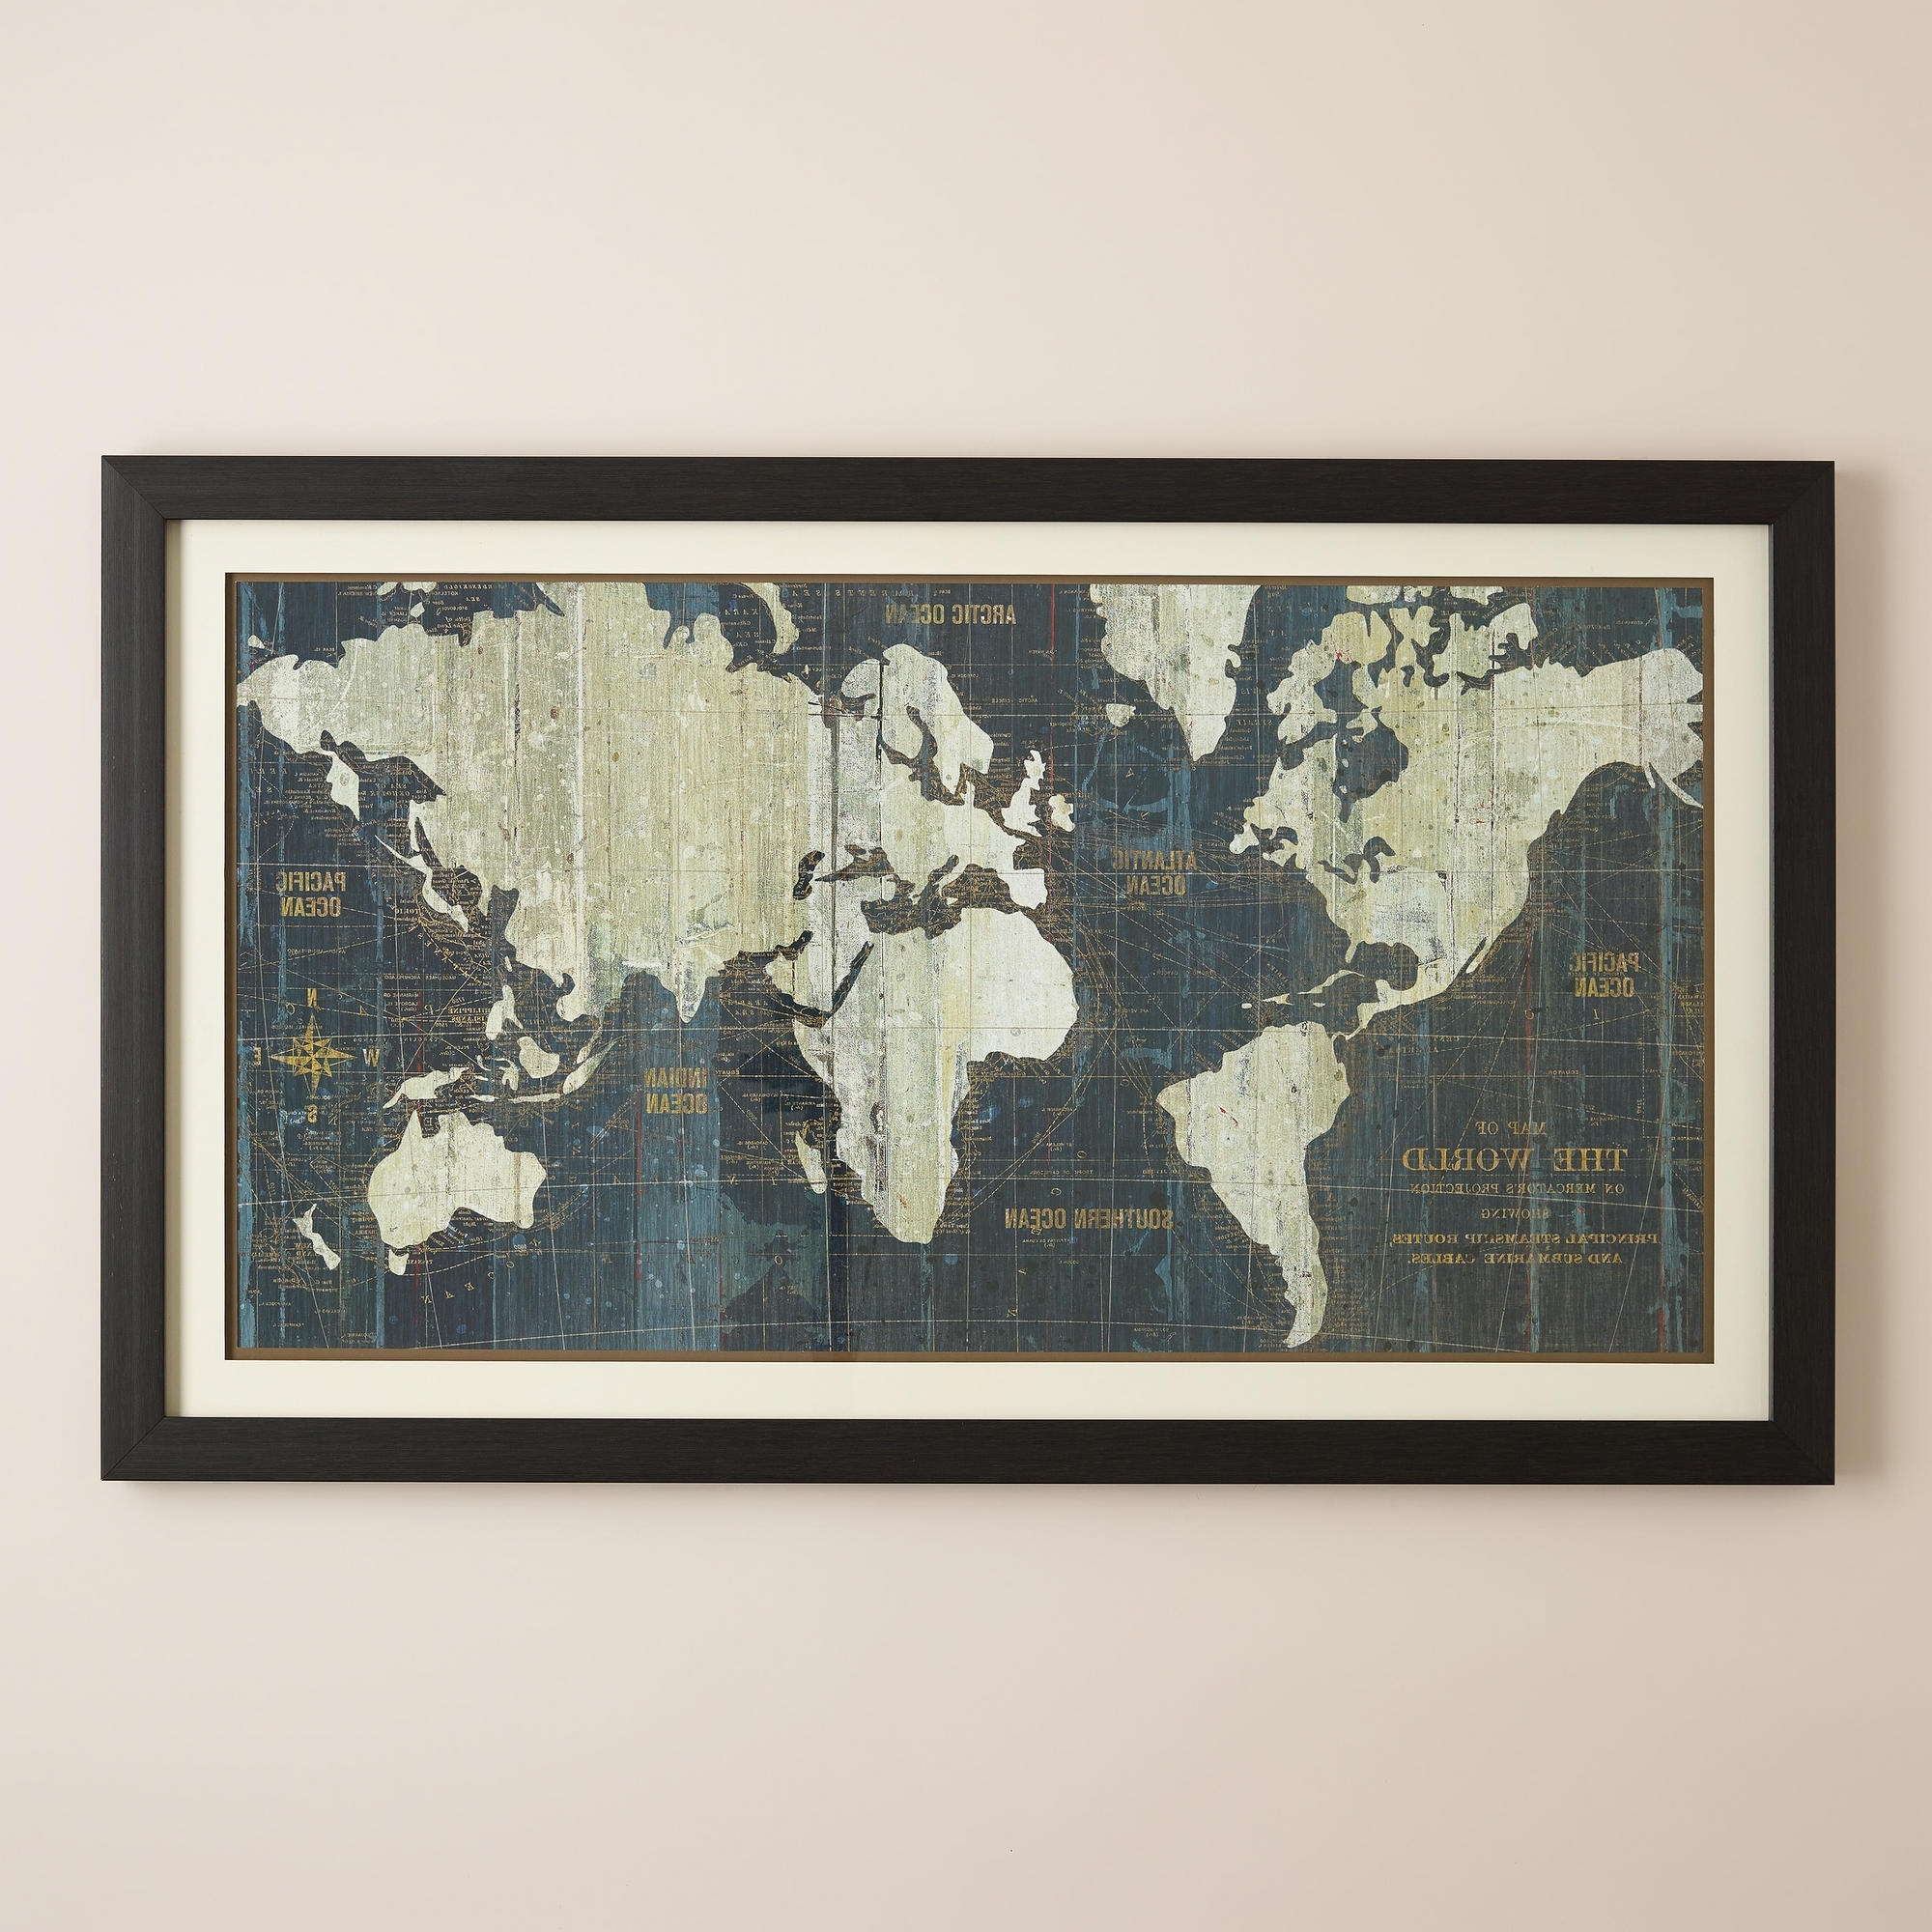 World Map Wall Art Framed With Regard To Most Up To Date Framed World Map For Wall Changyuheng Me And Large (View 15 of 15)